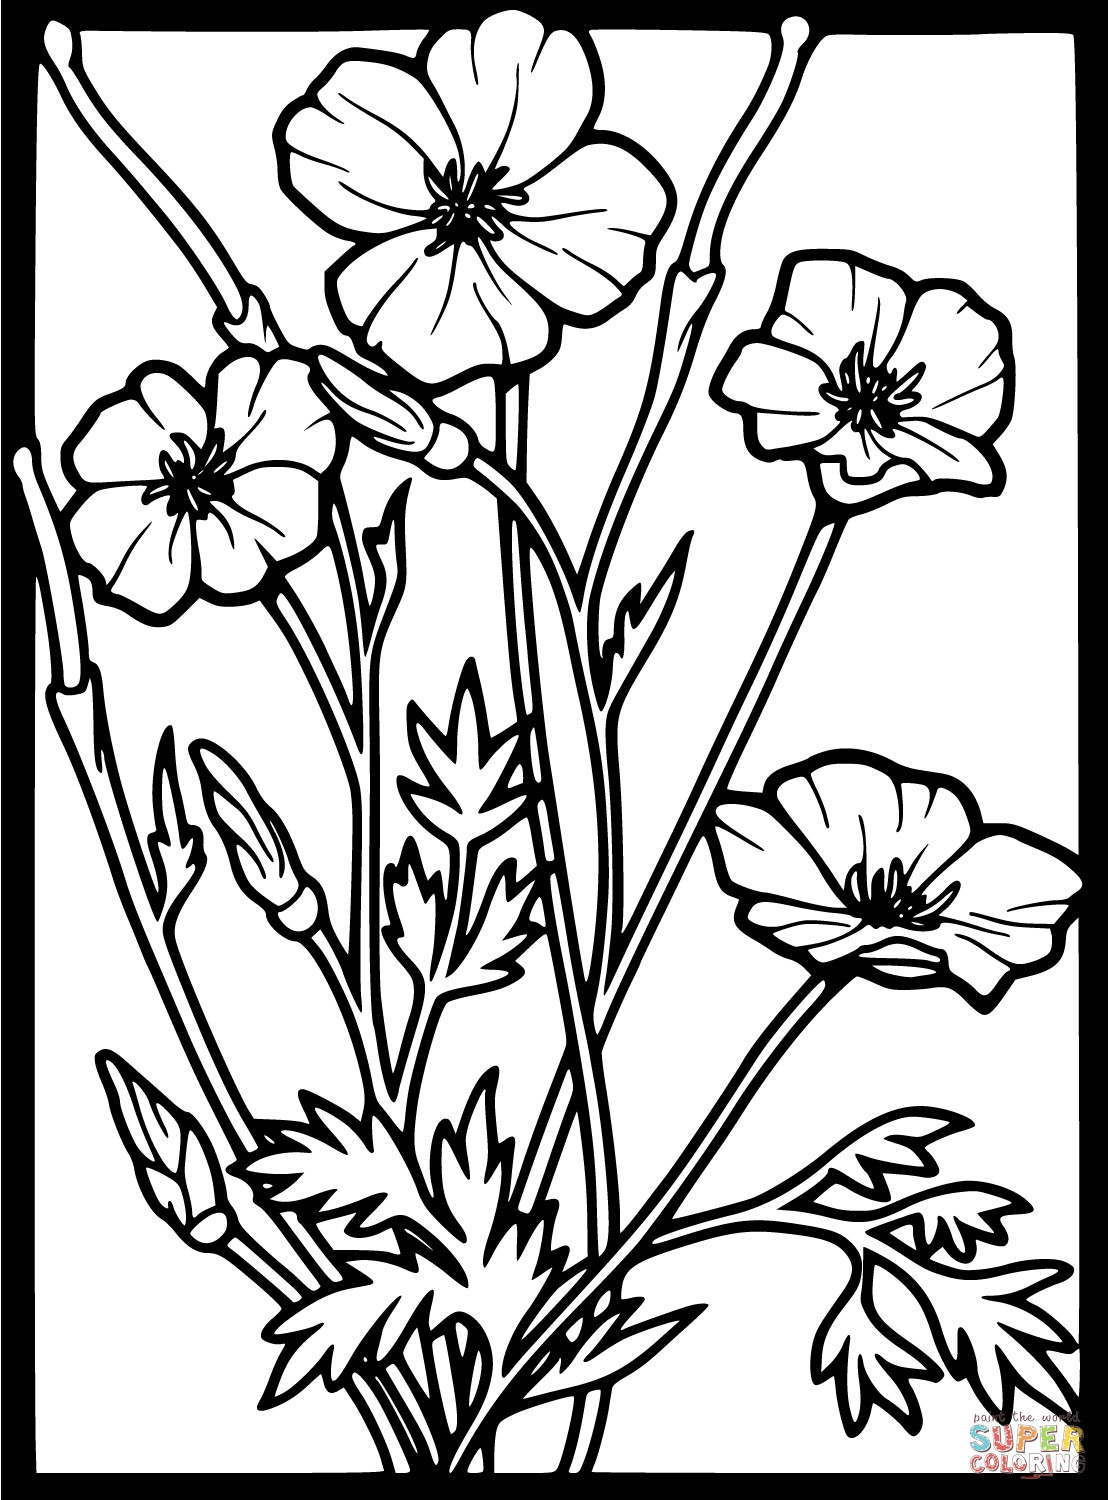 Vase for Long Stem Flowers Of New Vases Flower Vase Coloring Page Pages Flowers In A top I 0d Intended for Cool Poppy Super Coloring Kleurplaten Pinterest Of New Vases Flower Vase Coloring Page Pages Flowers In